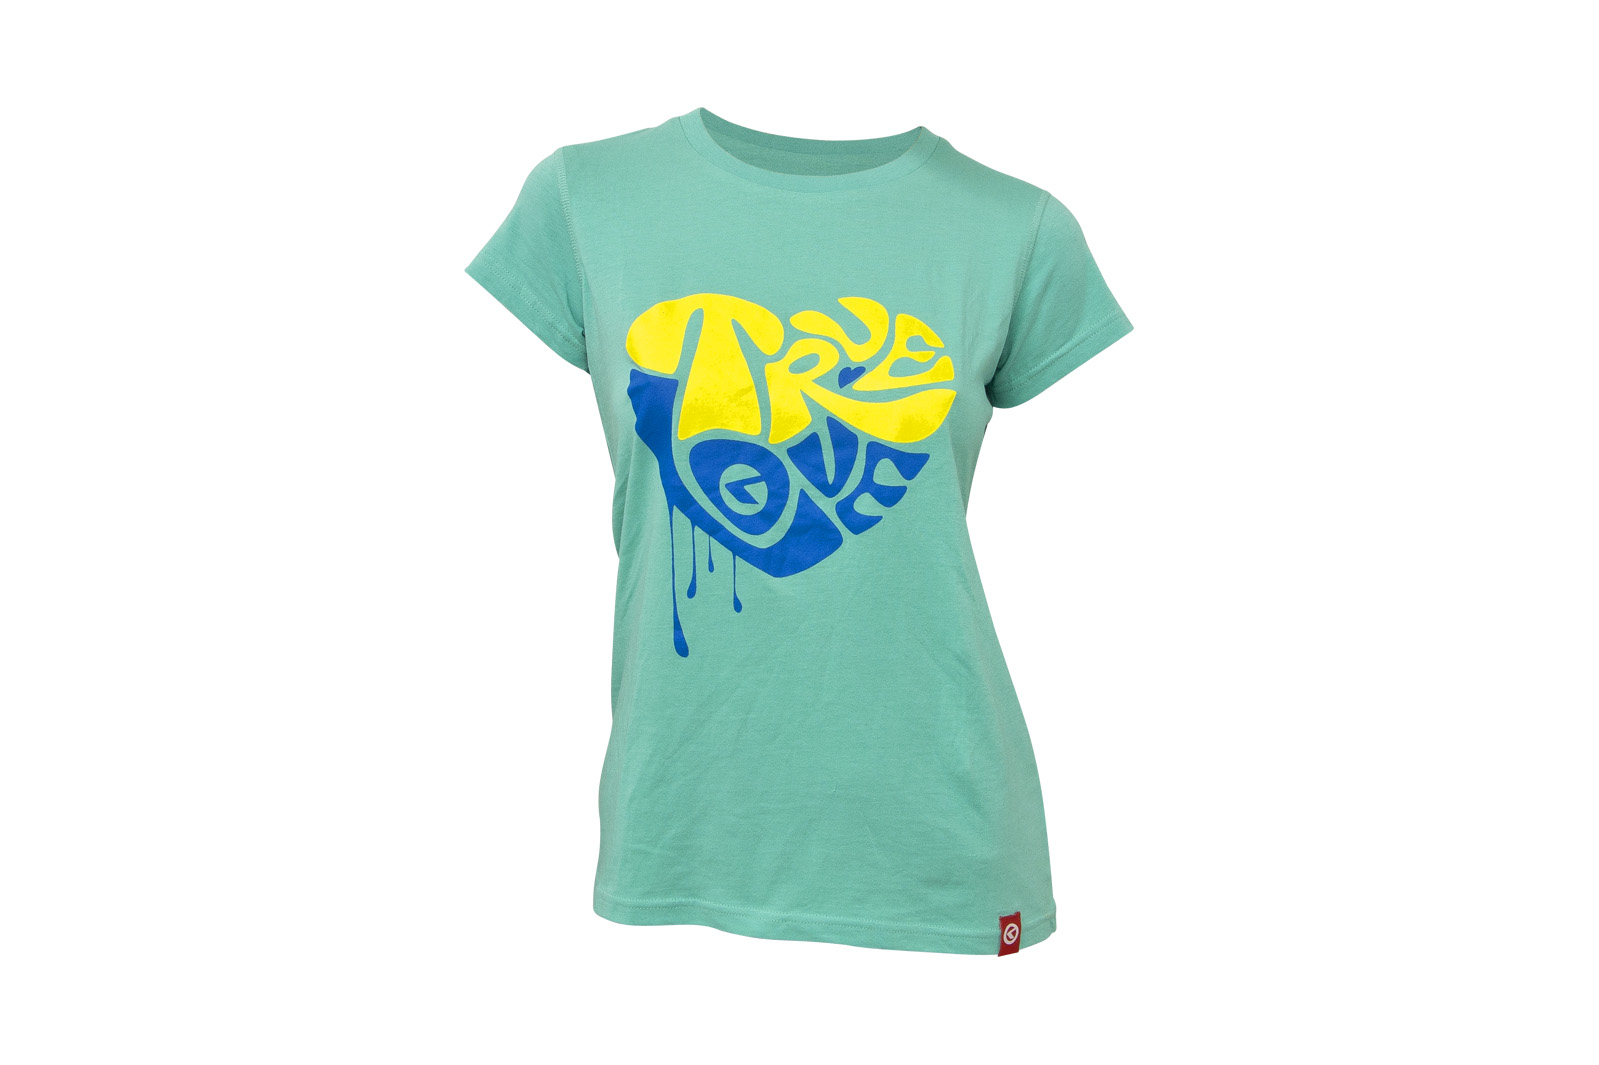 T-Shirt KELLYS WOMEN´S TRUE LOVE kurzarm Turquoise - XL - T-Shirt KELLYS WOMEN´S TRUE LOVE kurzarm Turquoise - XL